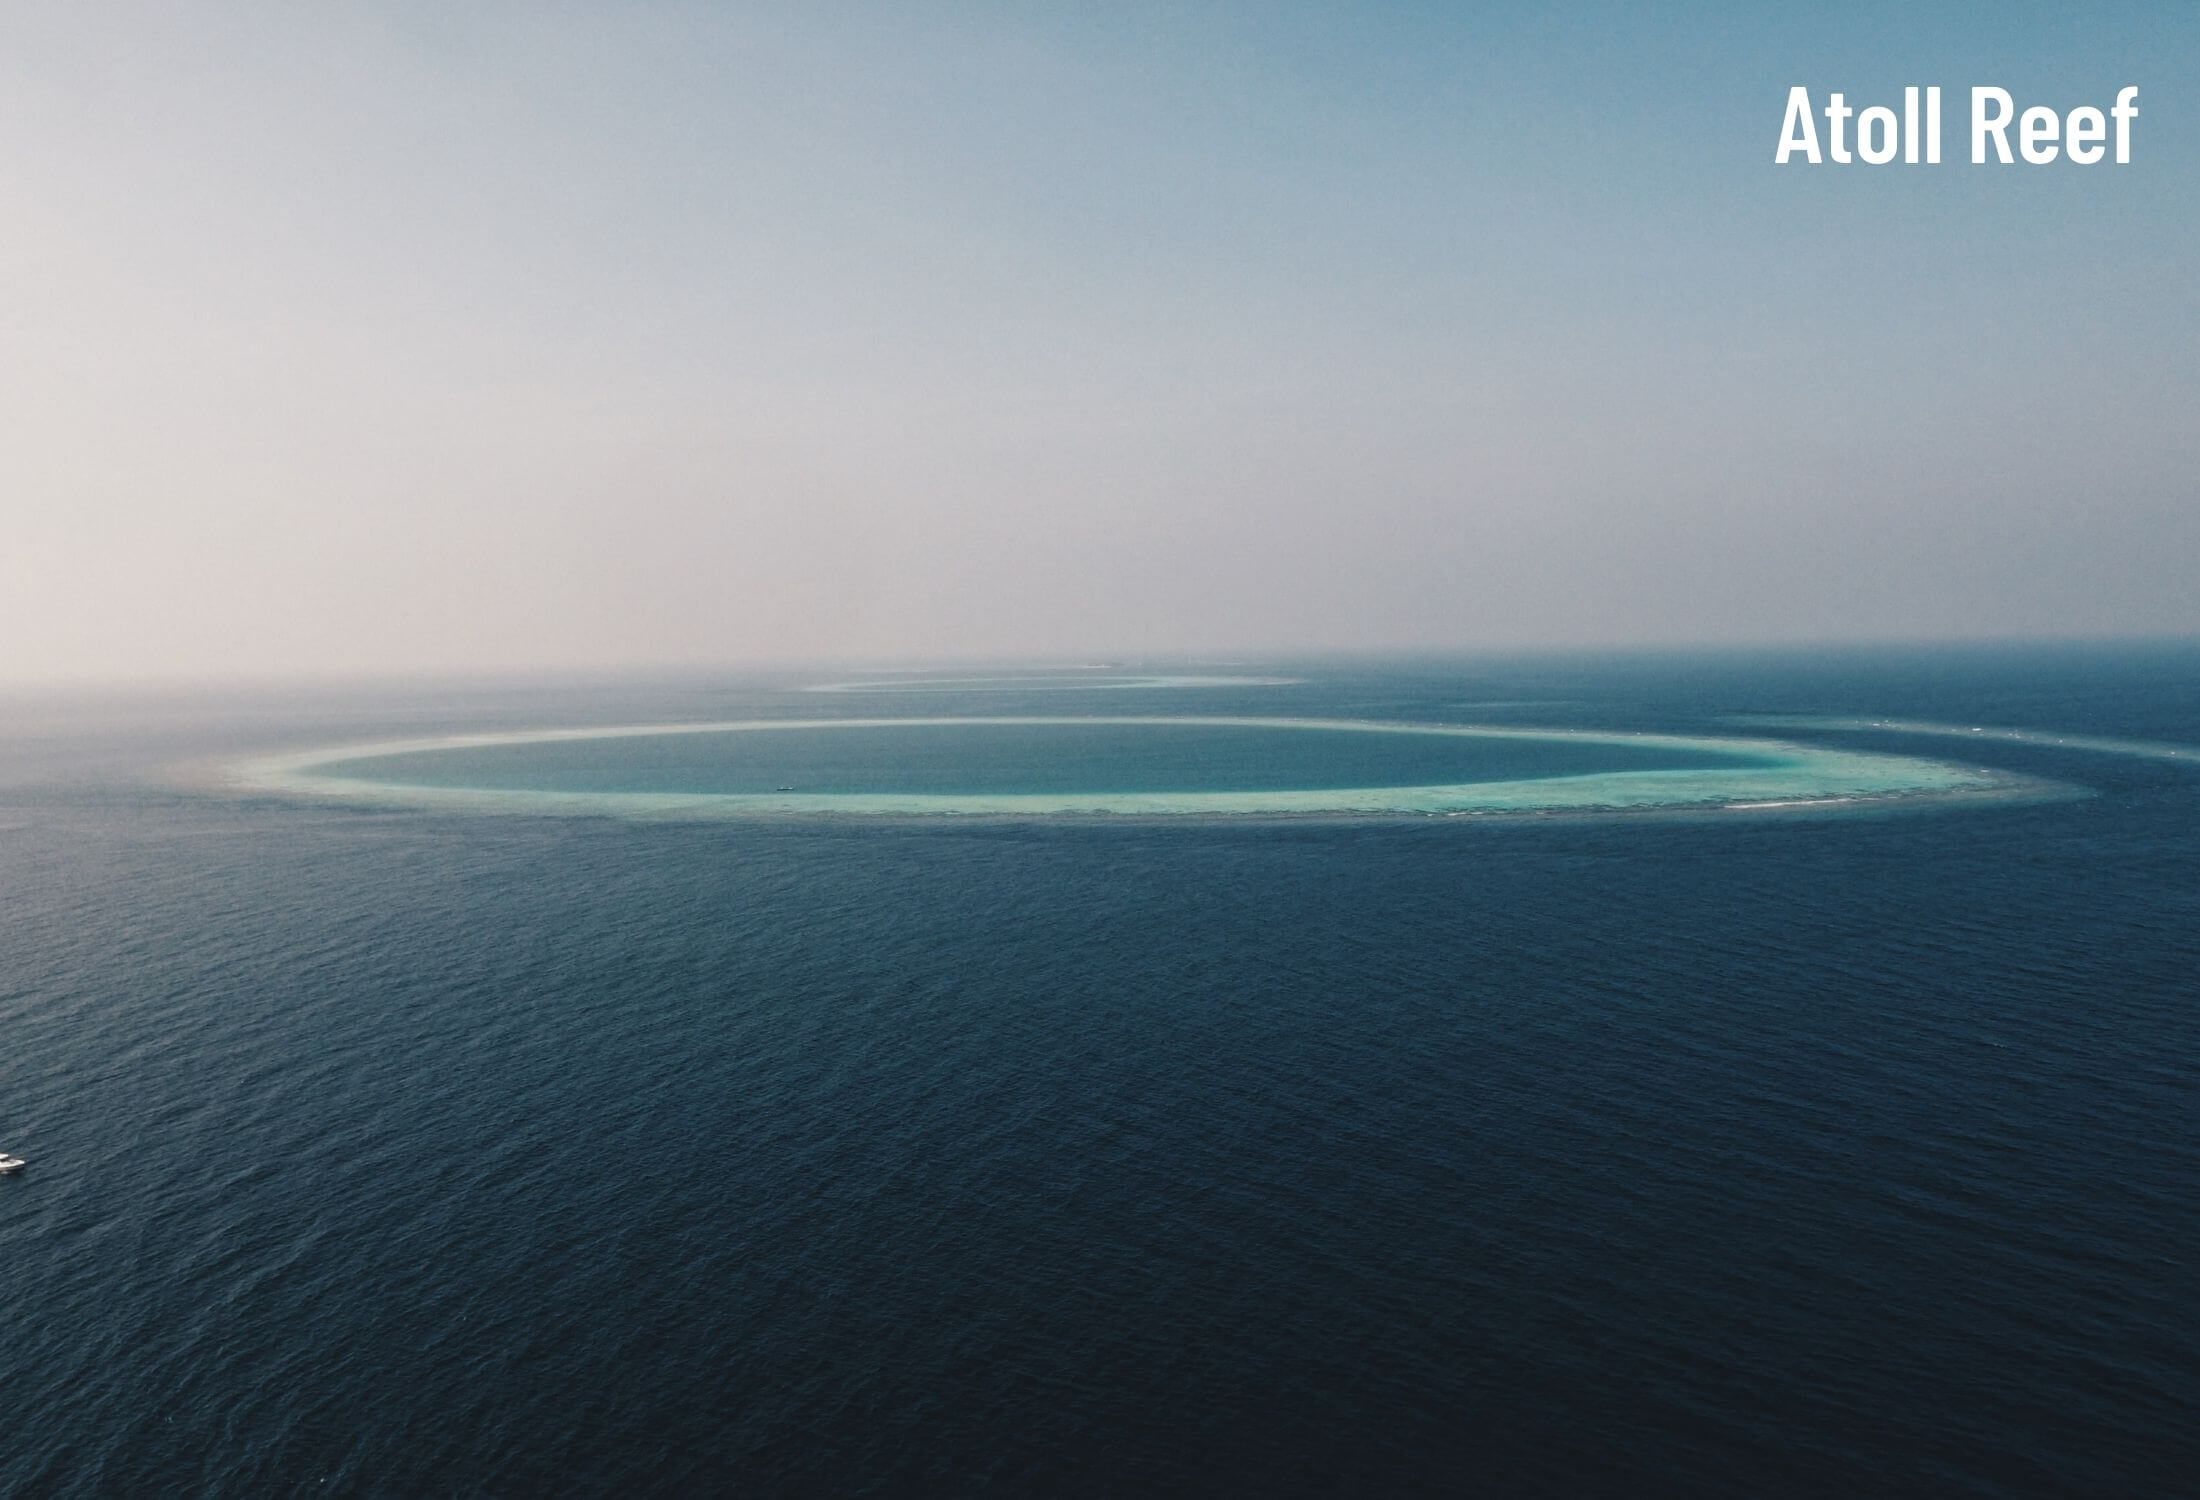 atoll reef